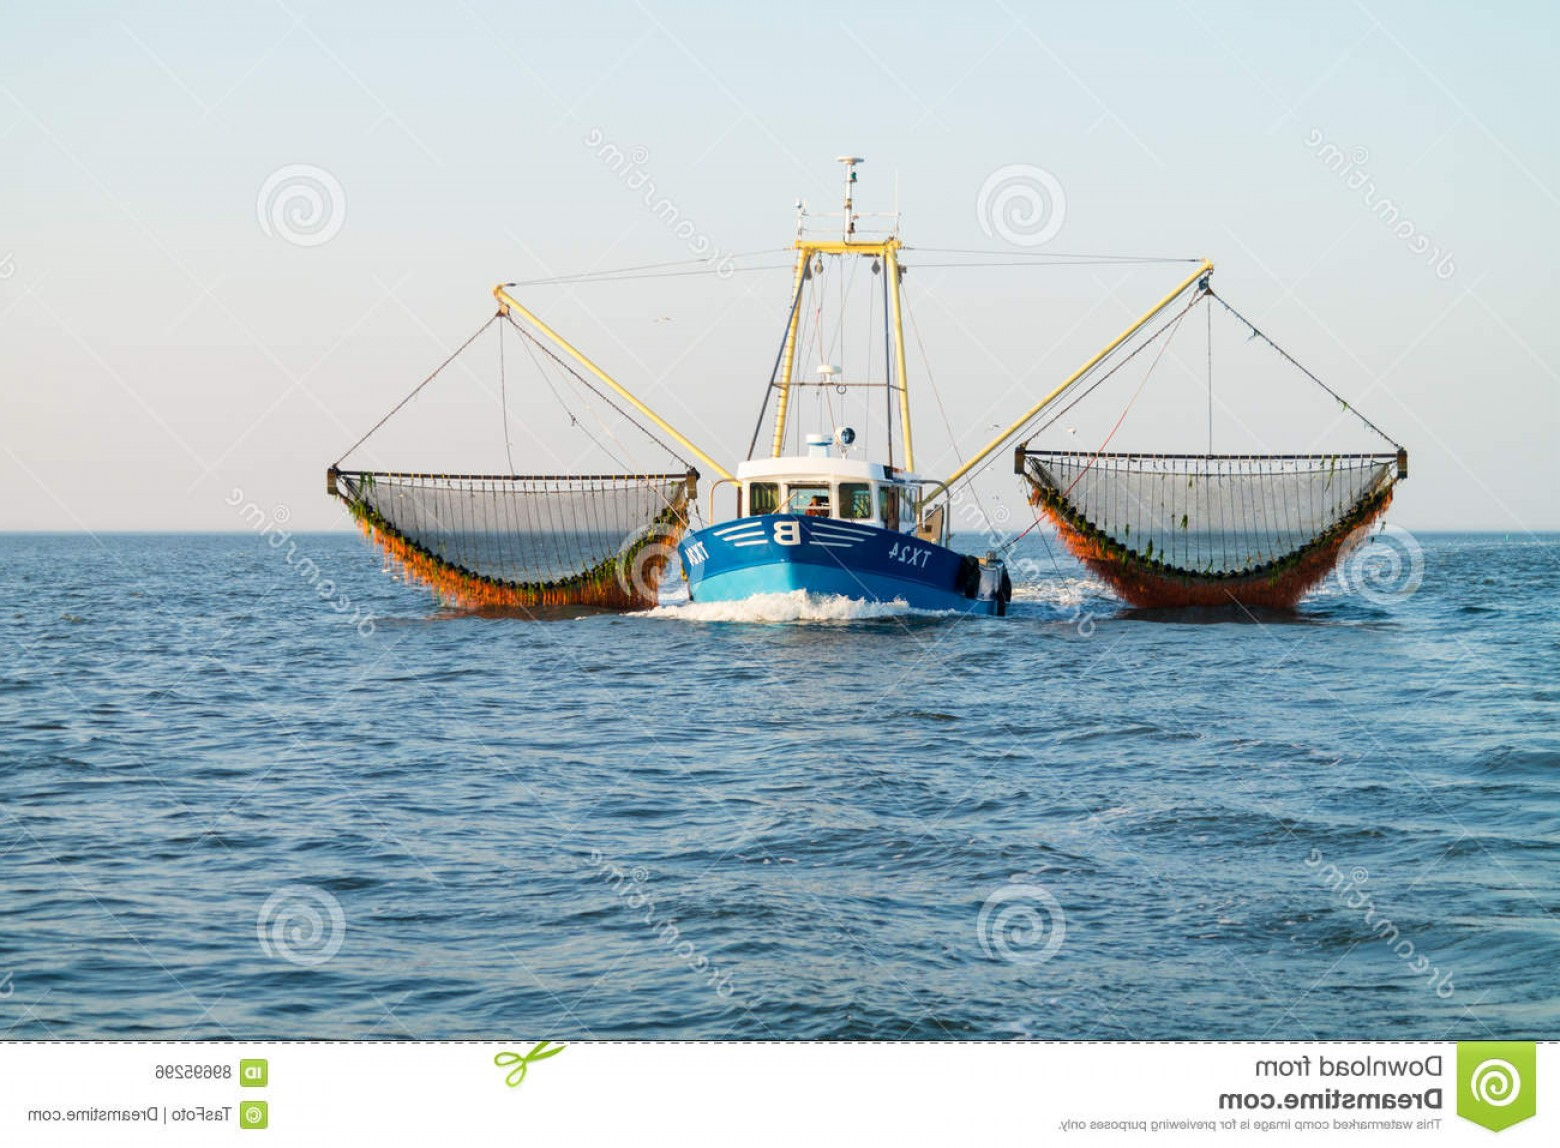 Vector Art Shrimper: Editorial Photo Fishing Boat Shrimp Trawler Fishing Waddensea Netherlands Commercial Outrigger Image